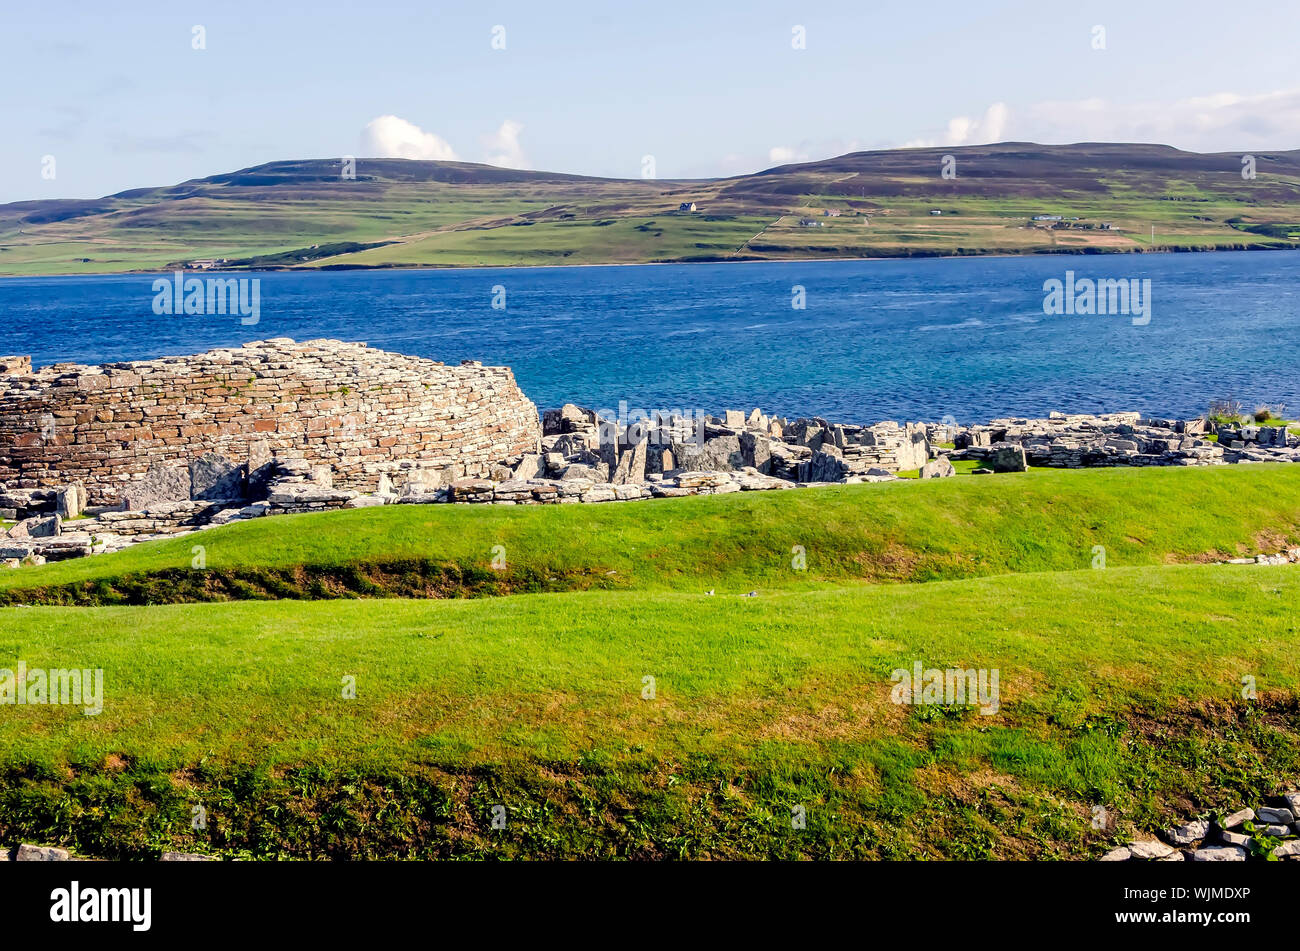 Broch of Gurness flanked by earth banks reinforced by stone. The broch village ruins surround it. - Stock Photo